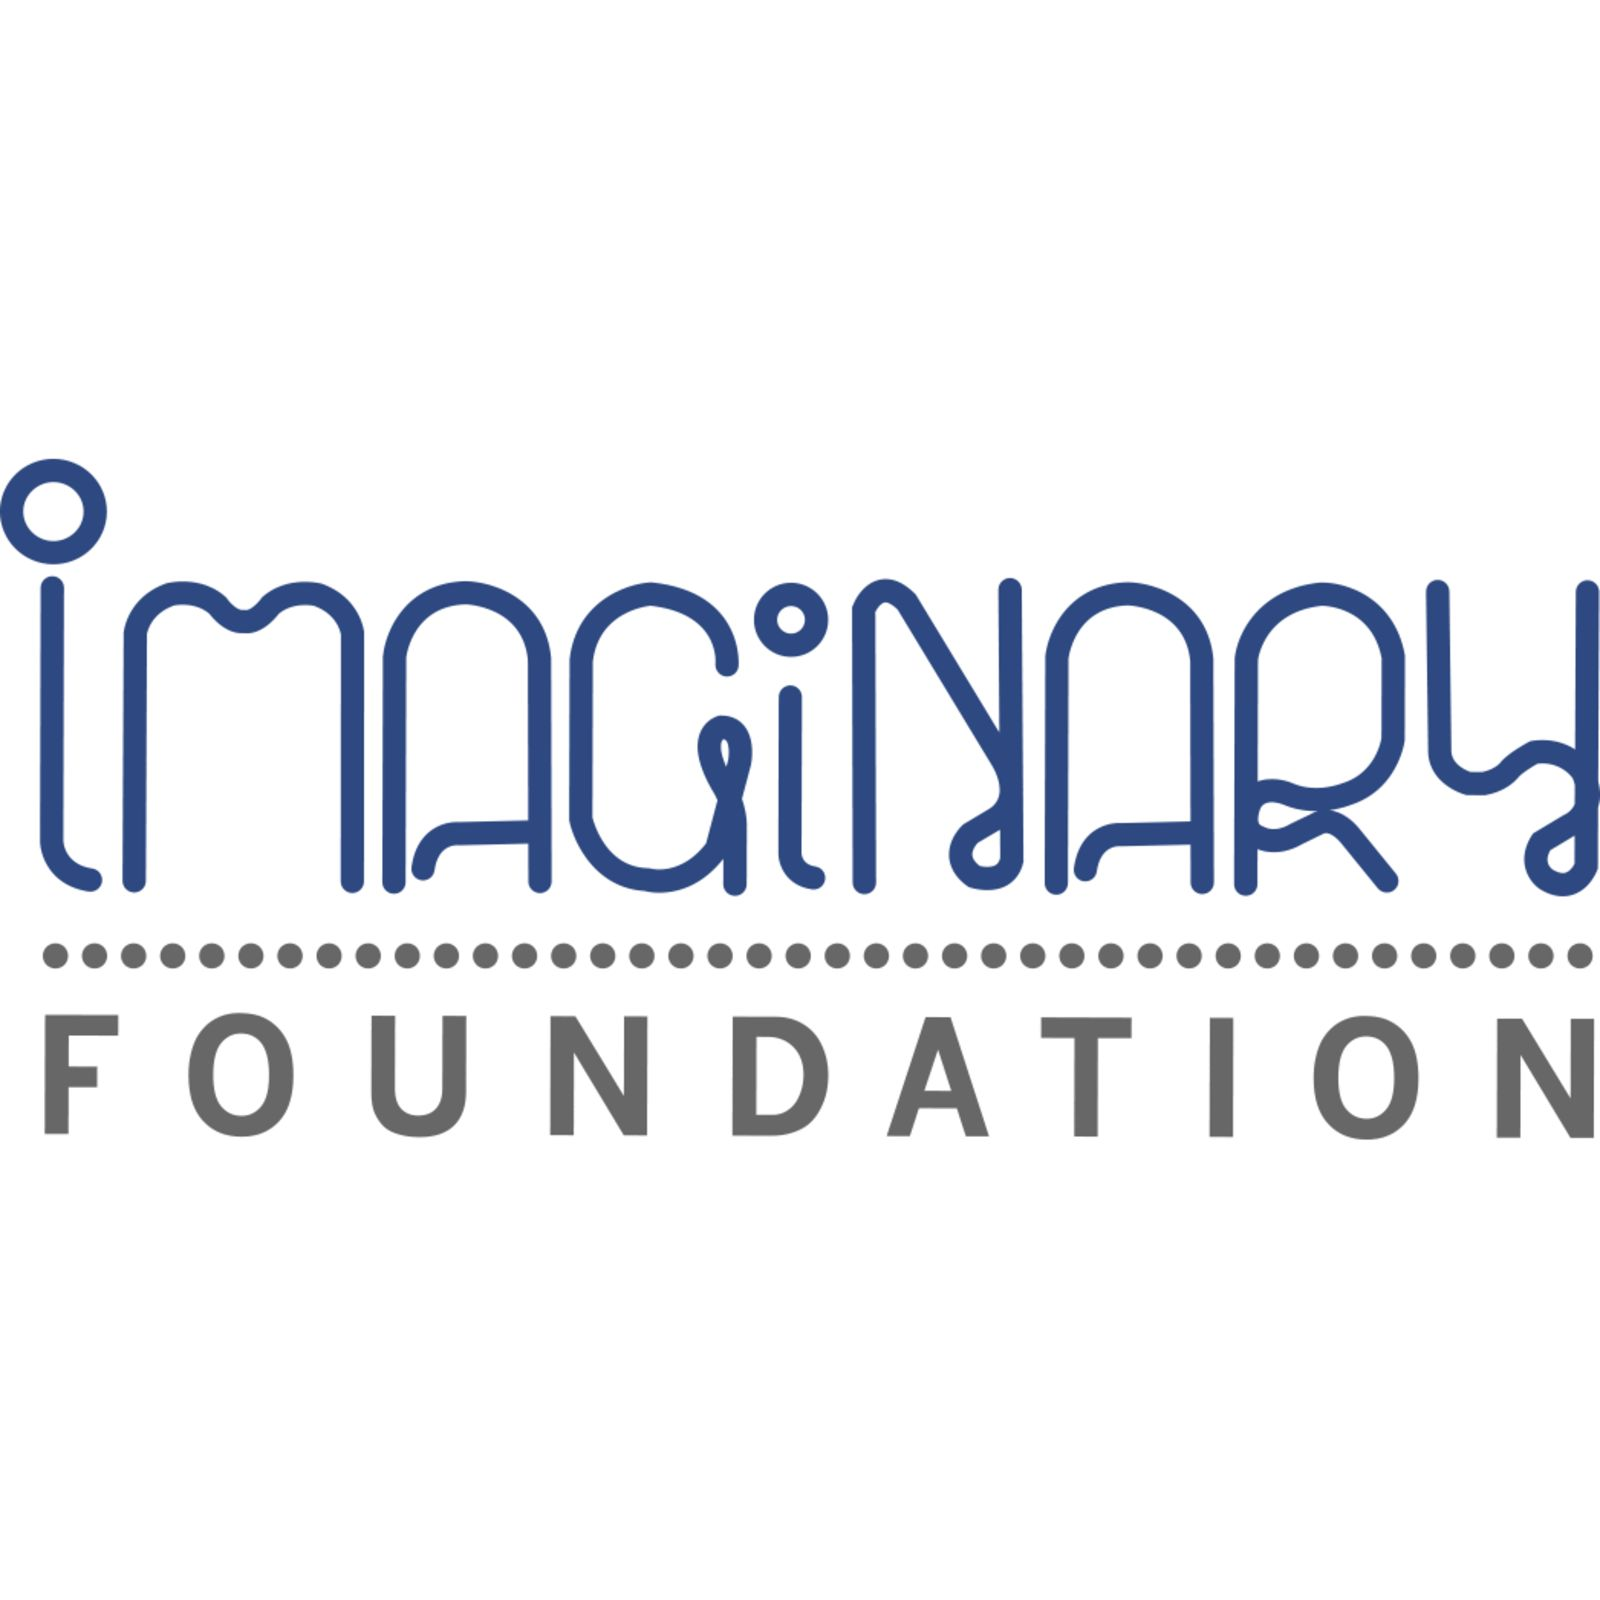 Imaginary Foundation